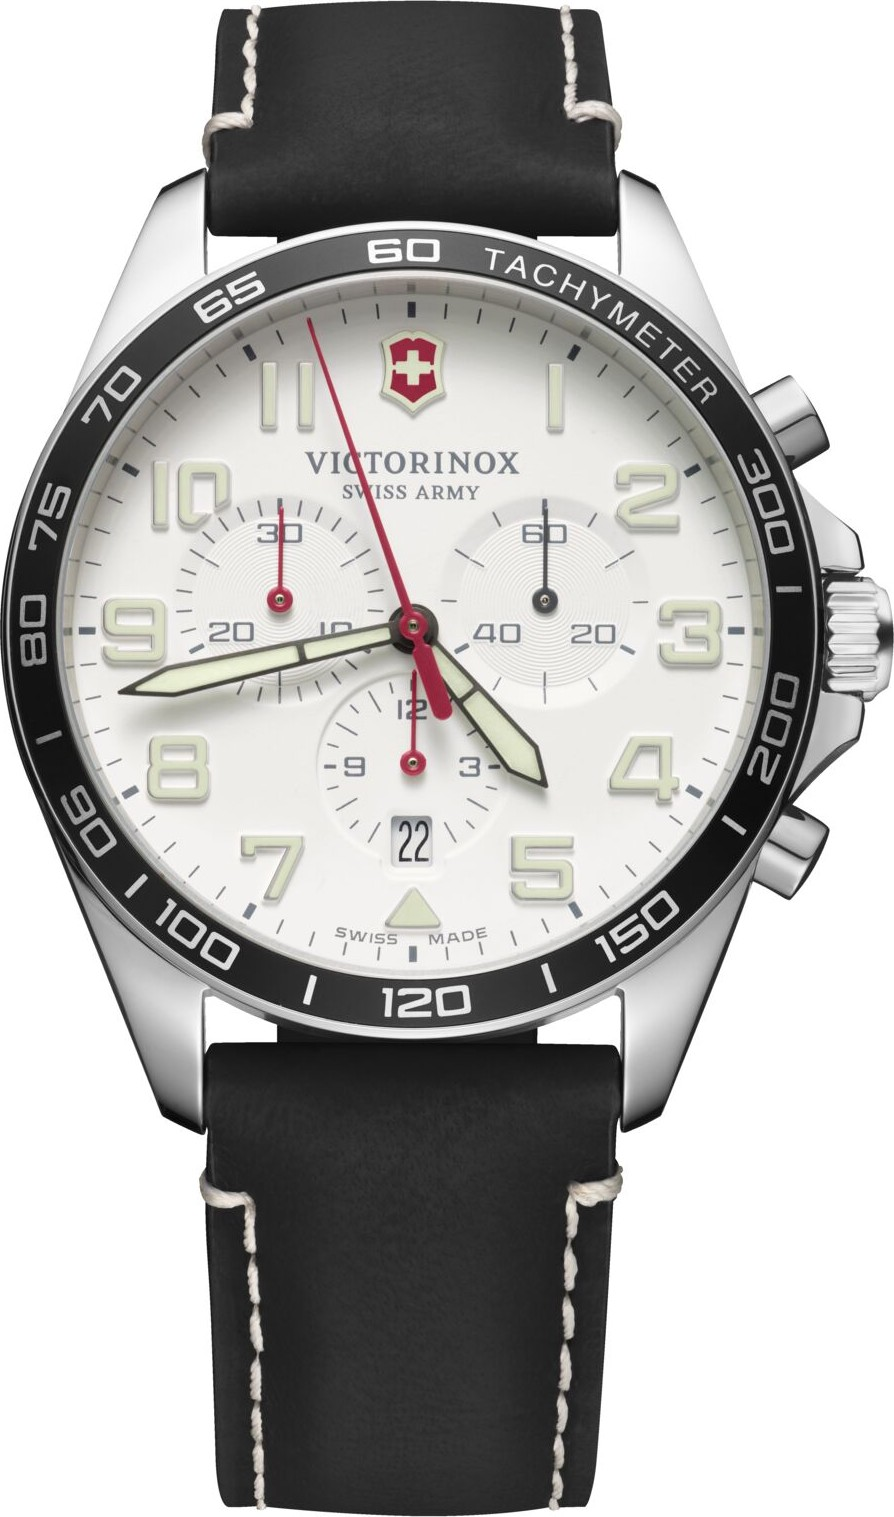 Victorinox Fieldforce Chronograph Watch 42mm